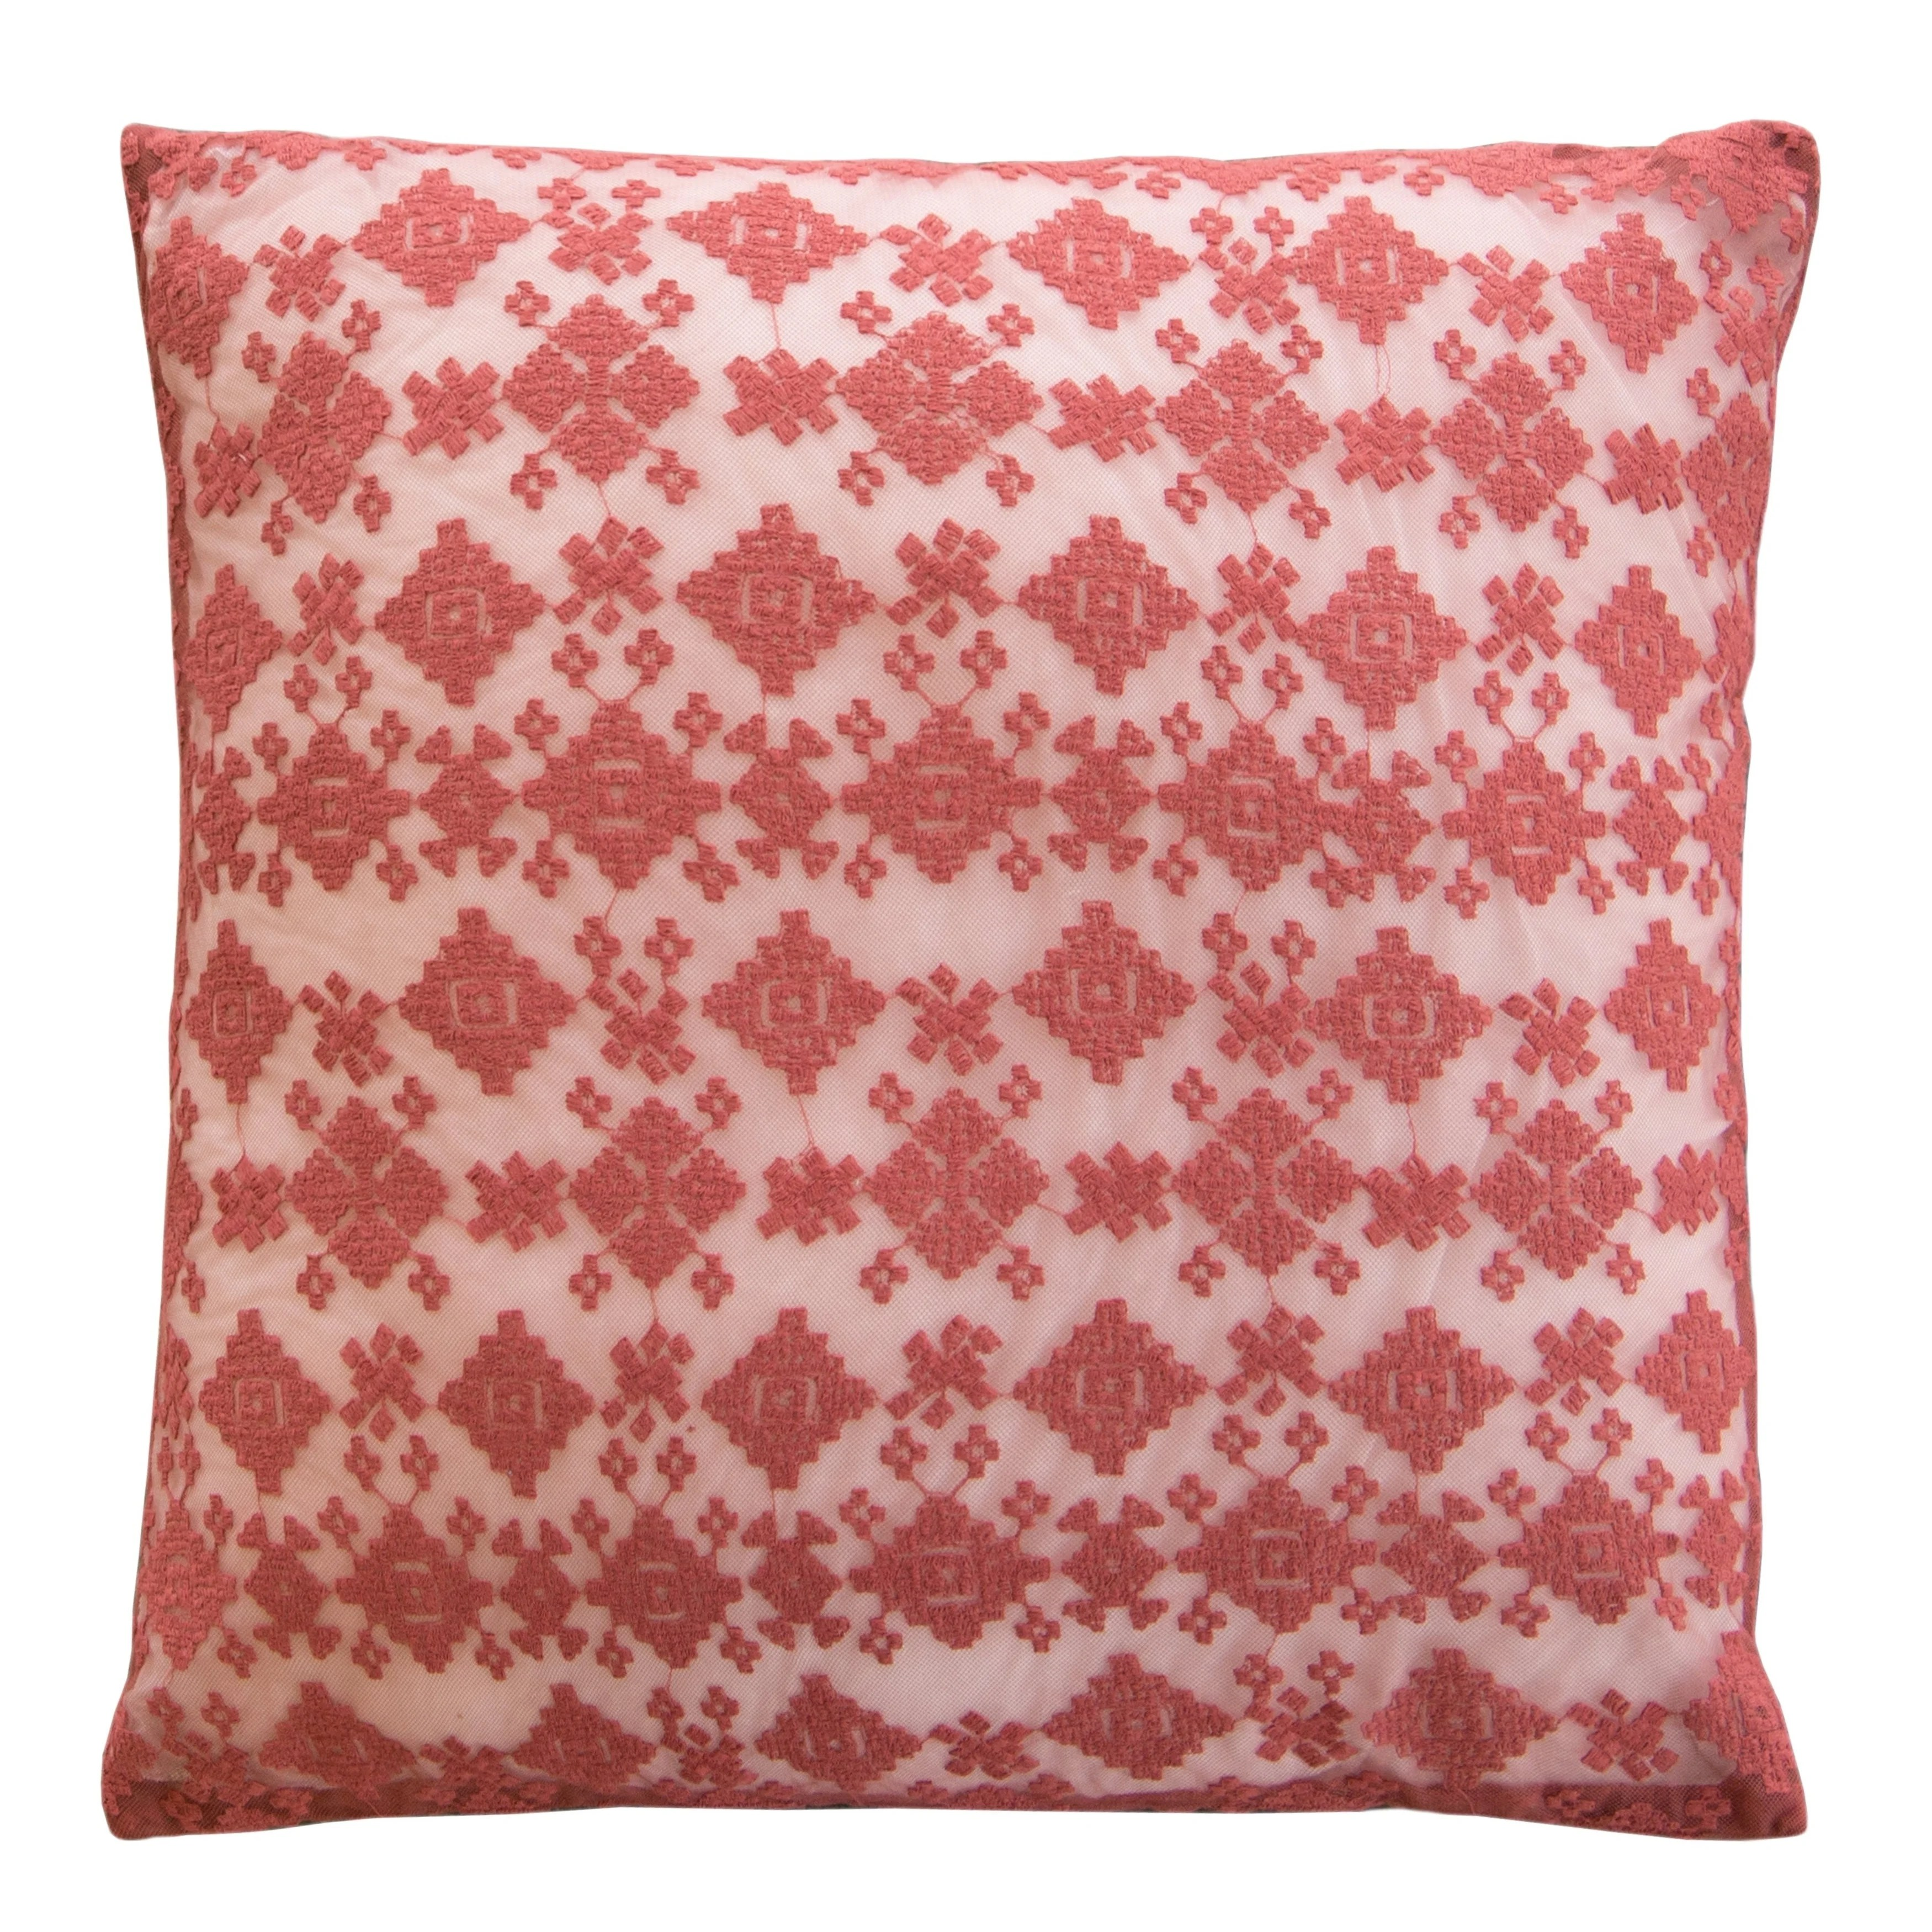 lace euro pillow cover 26x26 cover only garnet diamond